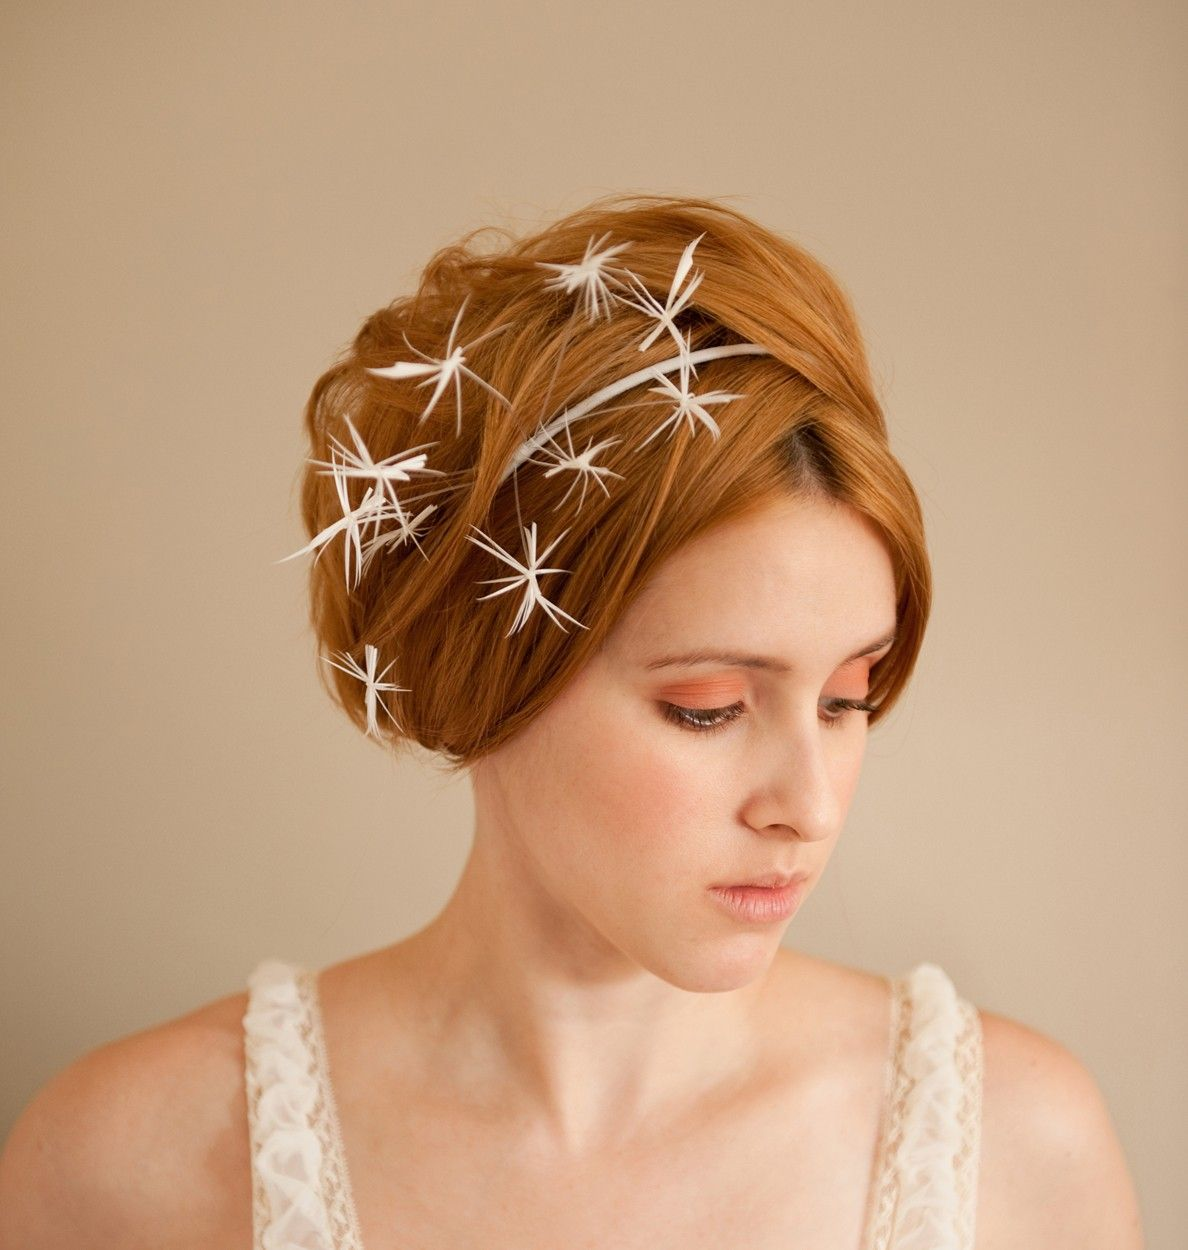 if i ever get married againi would wear this in my hairbut